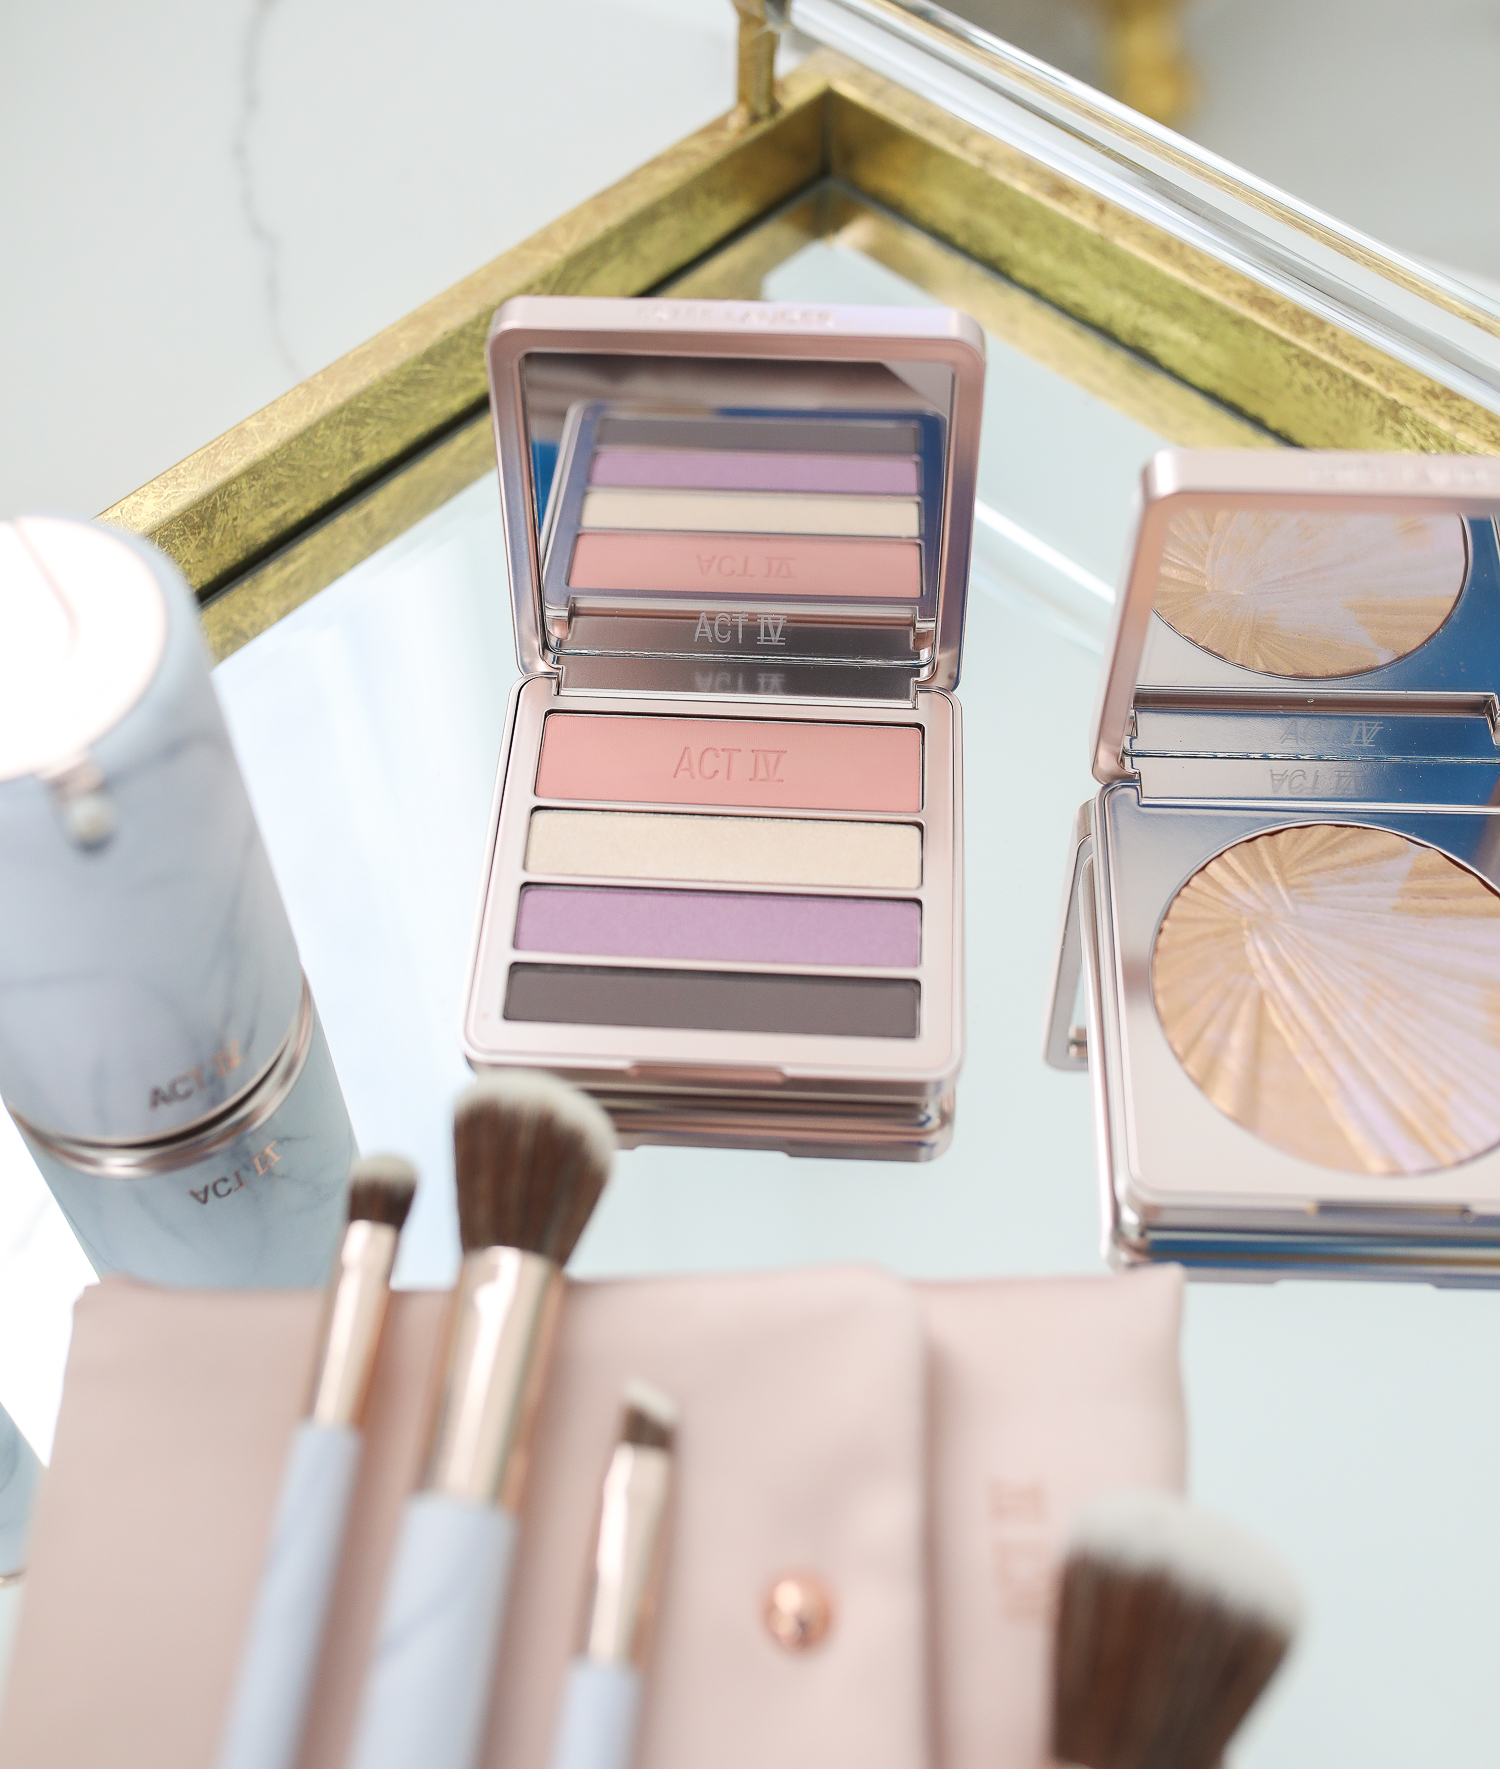 Estee Lauder Makeup by popular US beauty blog, The Sweetest Thing: image of Estee Lauder Act IV makeup.